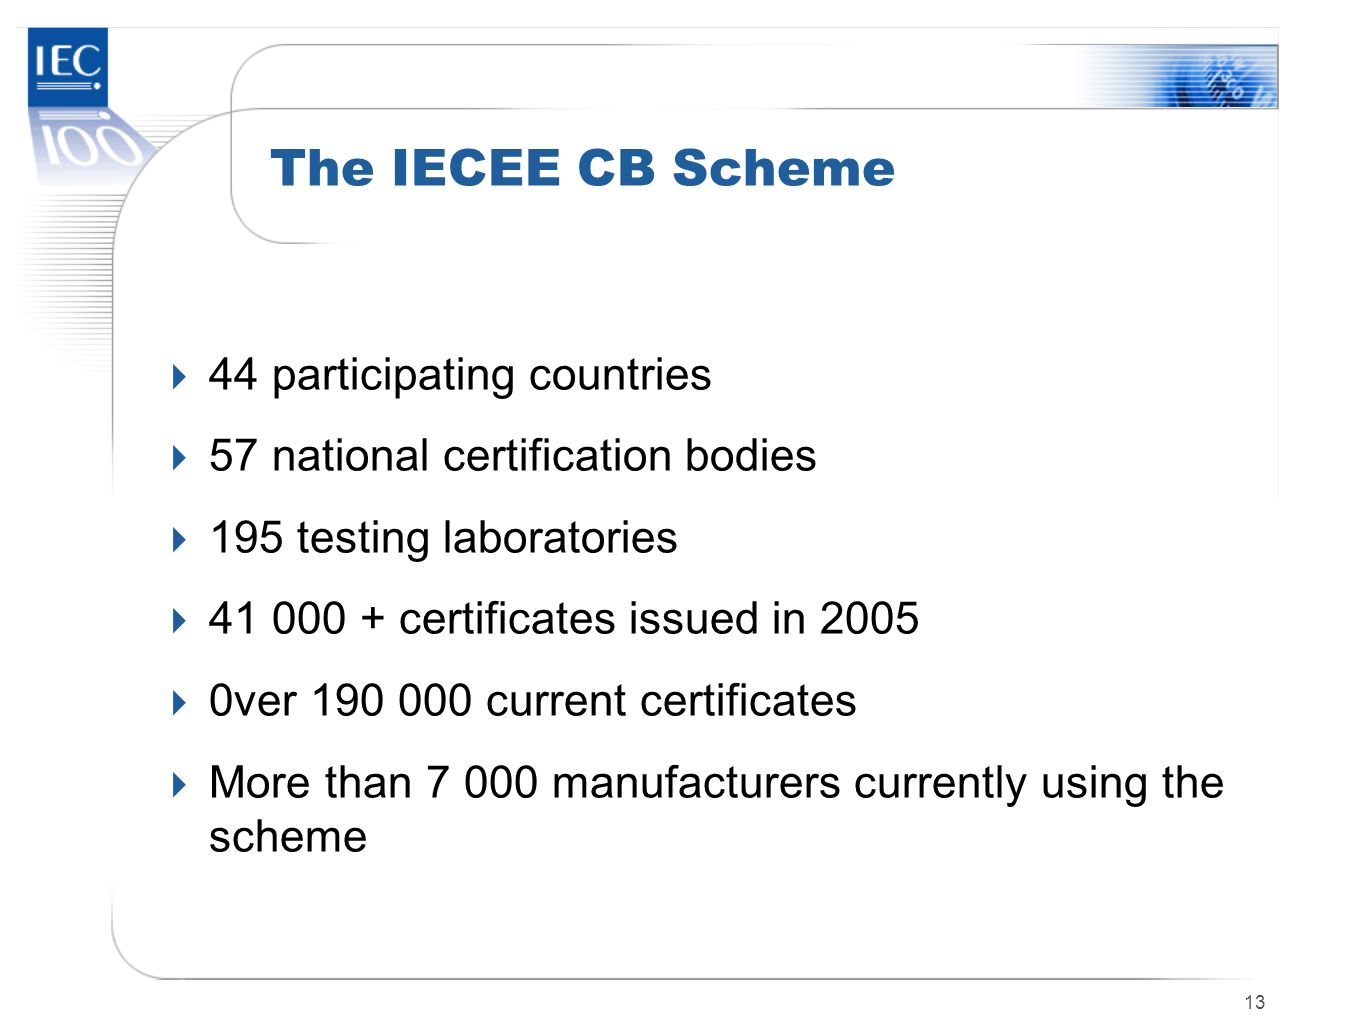 13 The IECEE CB Scheme 44 participating countries 57 national certification bodies 195 testing laboratories 41 000 + certificates issued in 2005 0ver